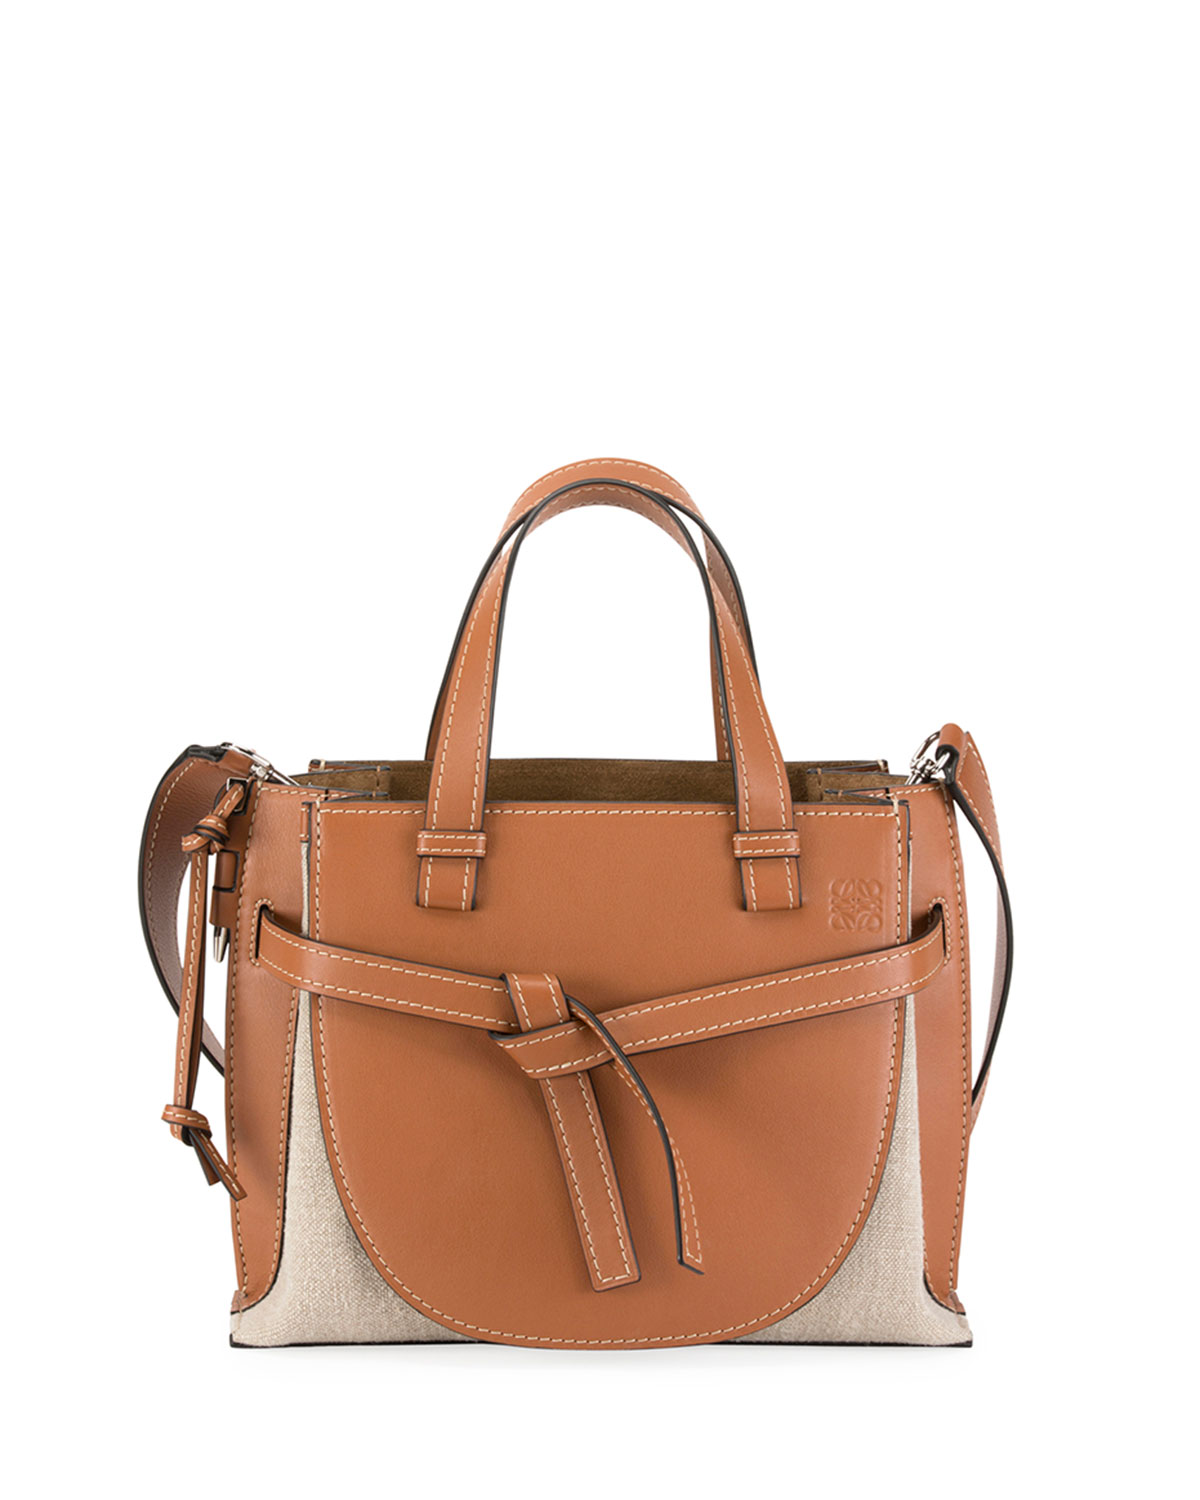 7f22bc932c Loewe Gate Small Leather Top-Handle Tote Bag